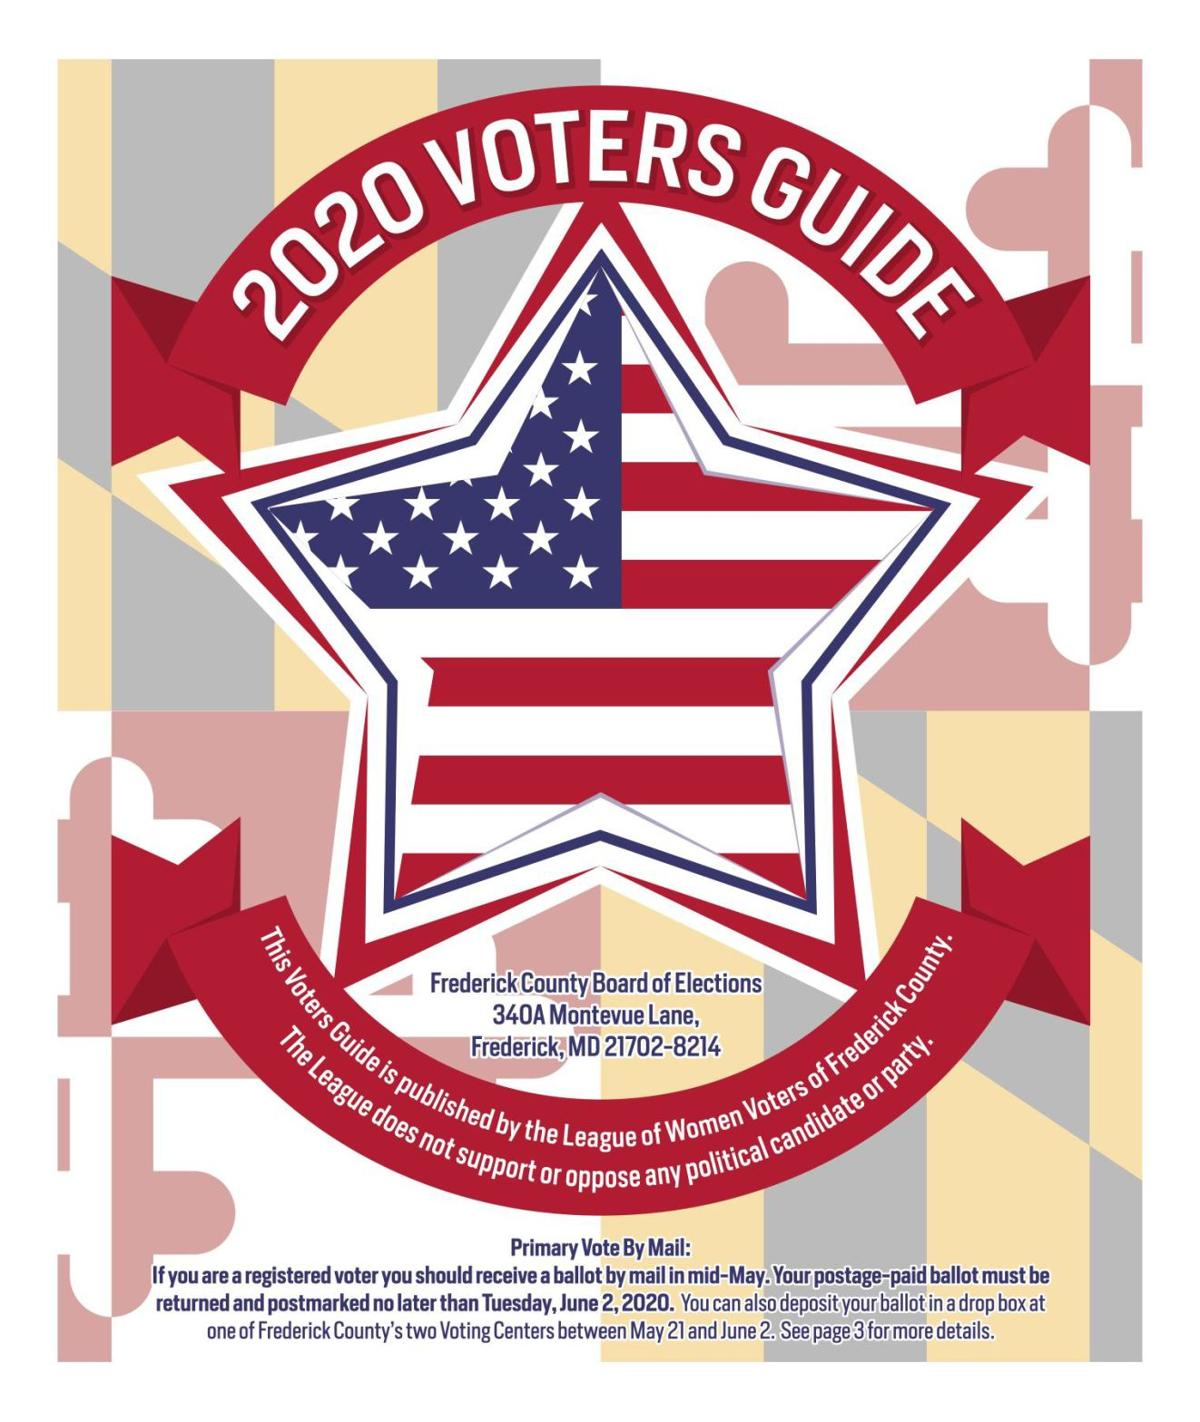 2020 Voters Guide, primary